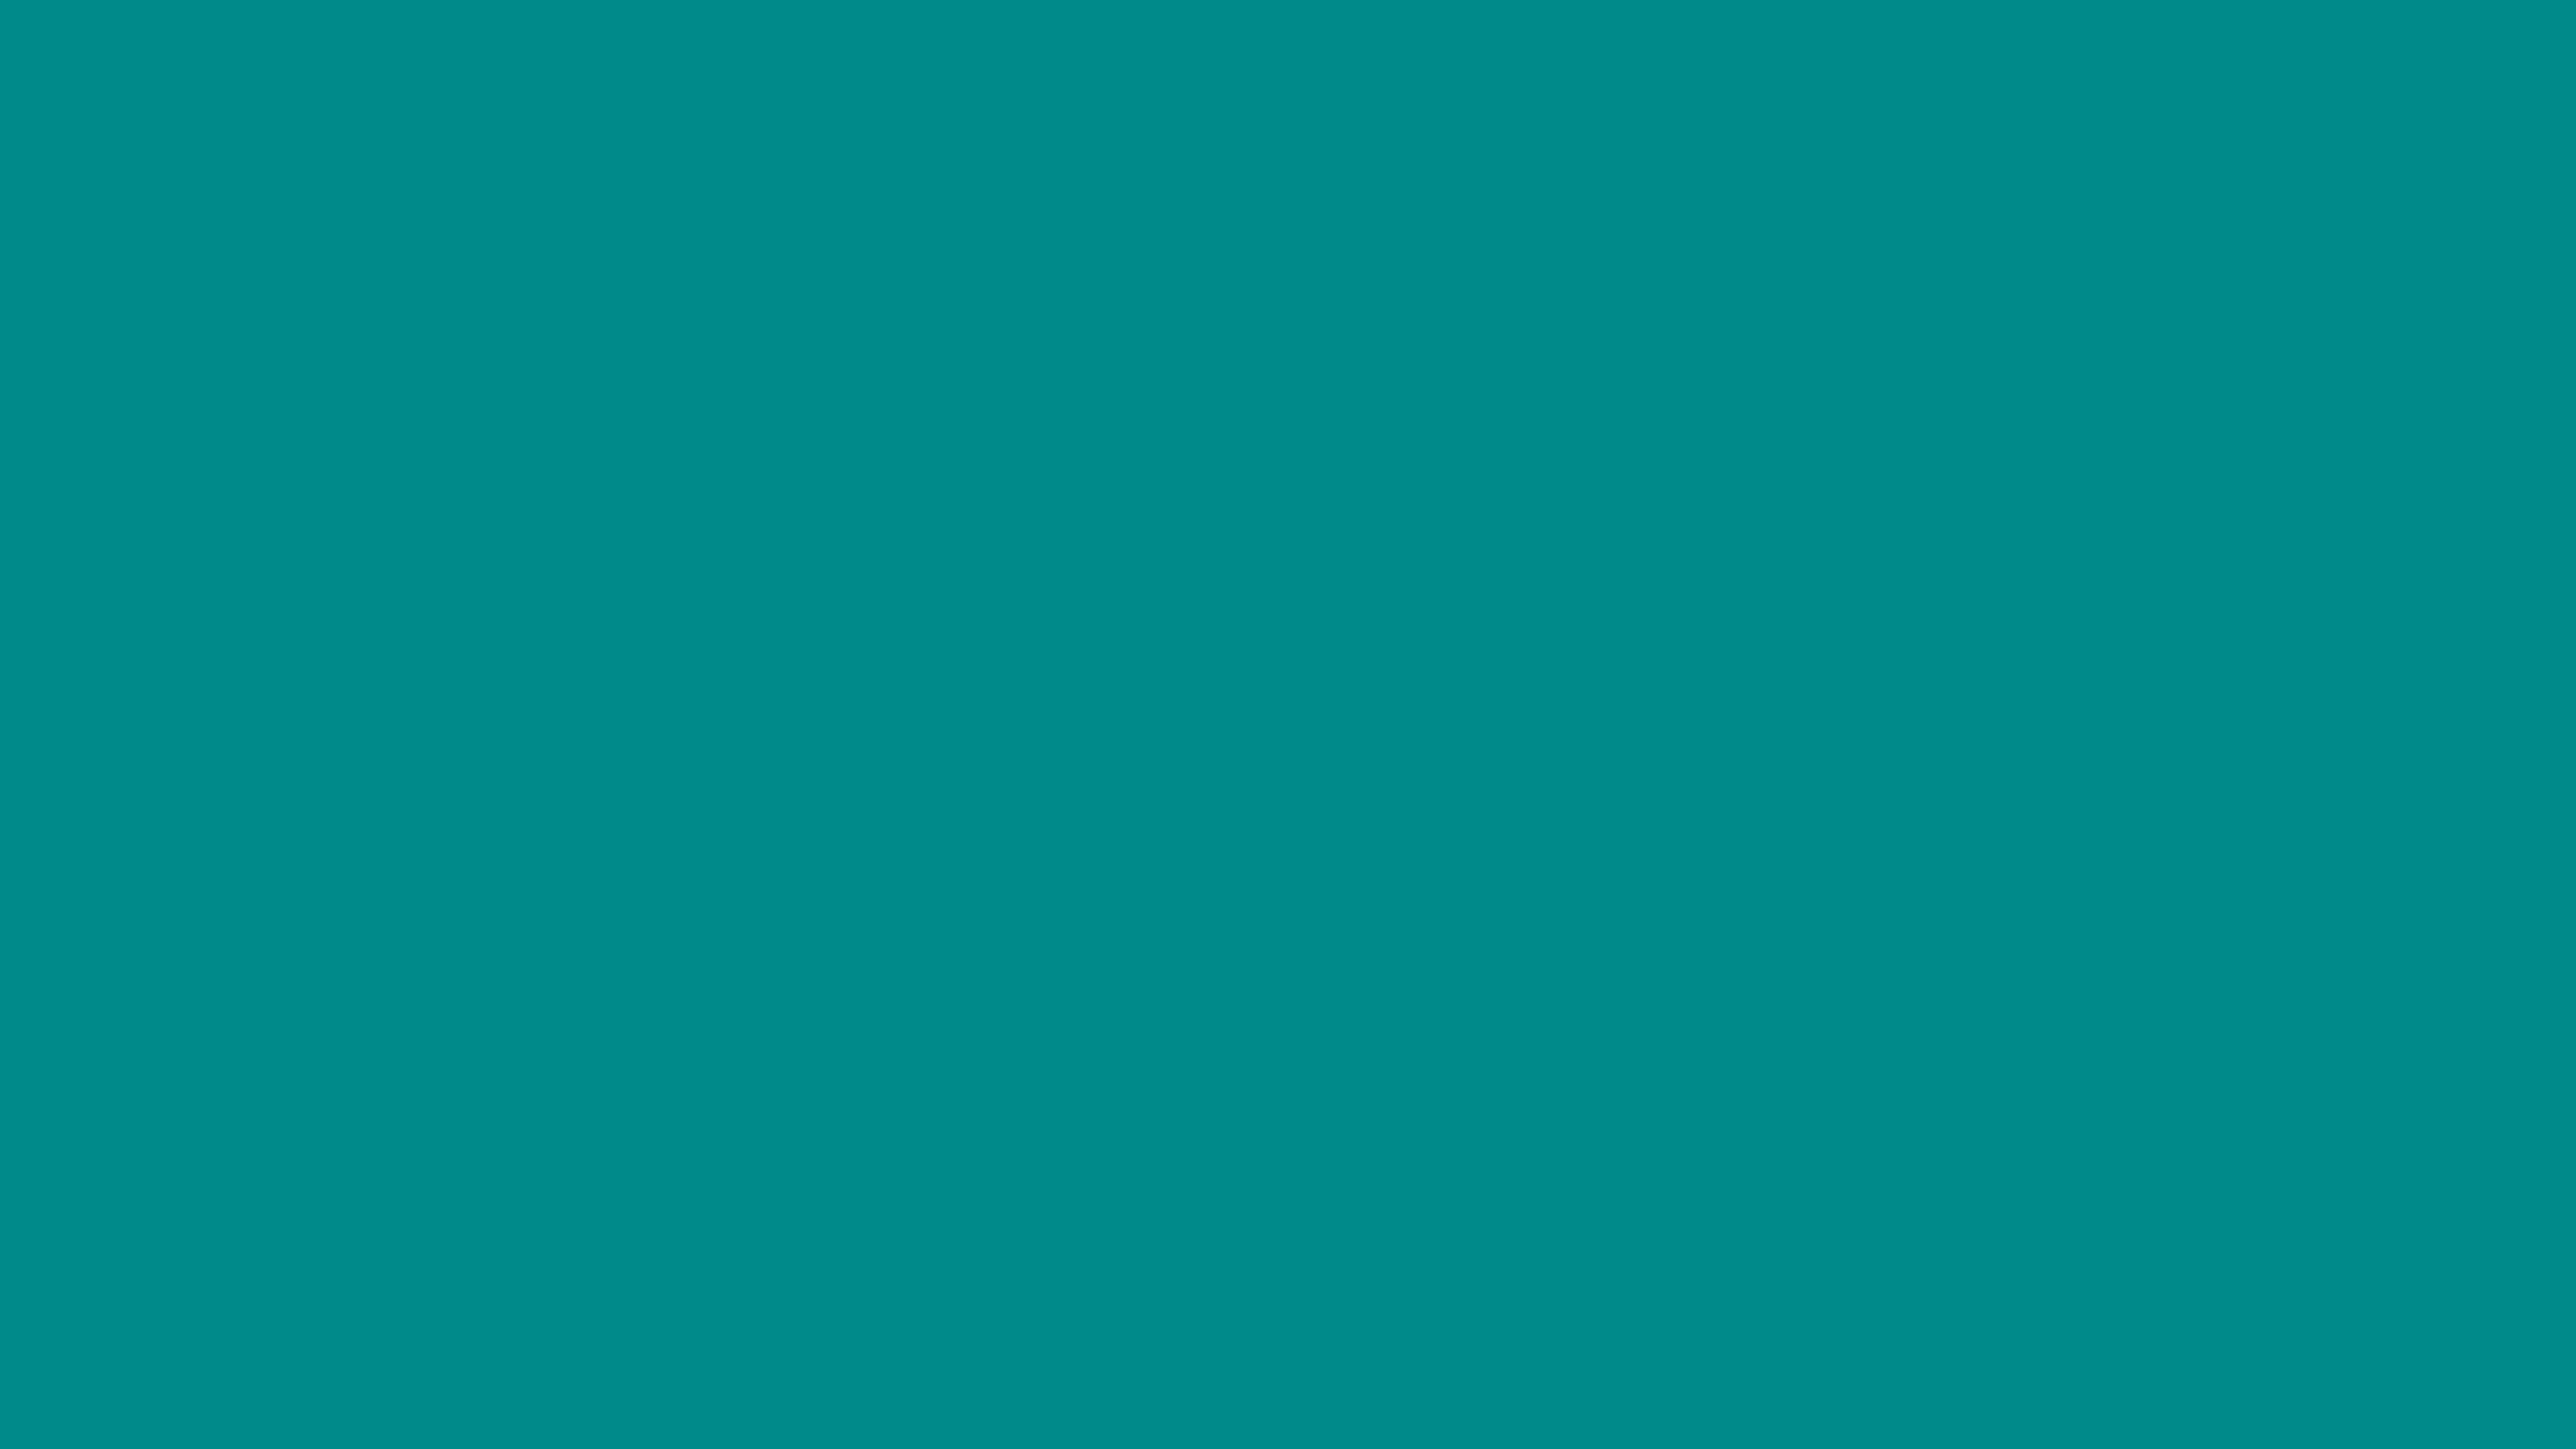 3840x2160 Dark Cyan Solid Color Background